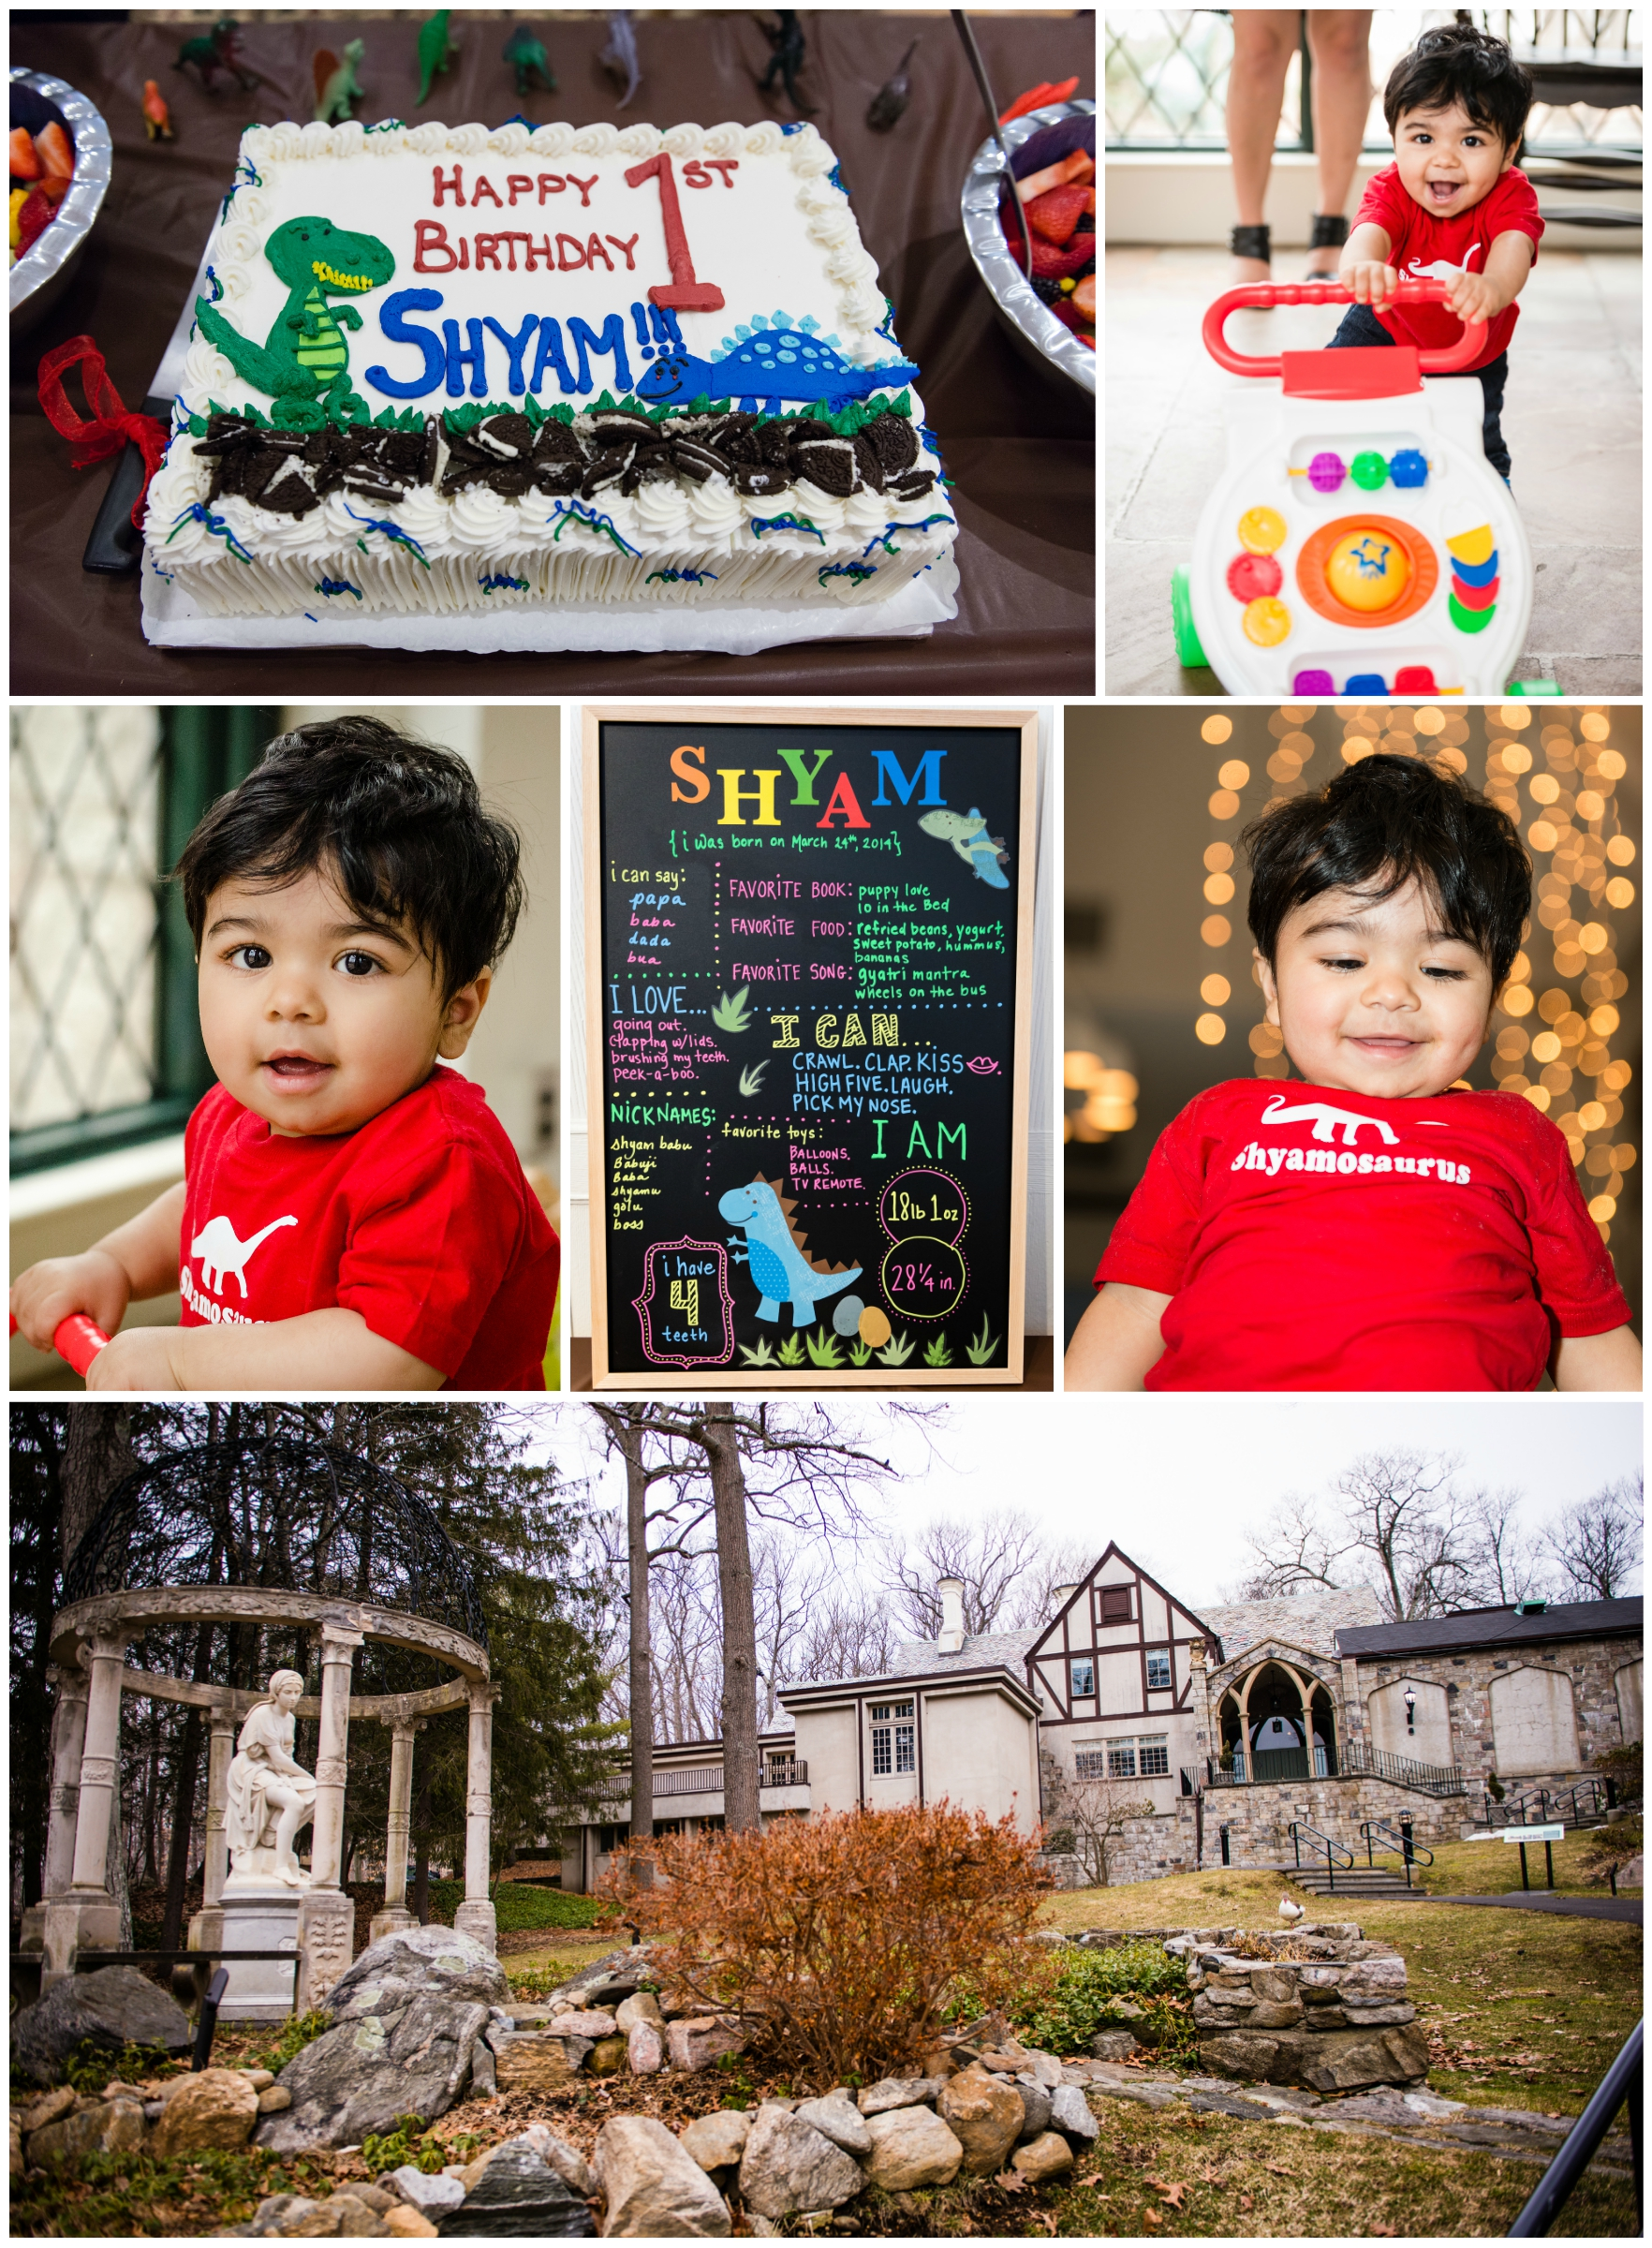 Looks like Shyam had a great time during his first birthday inside Bendel Mansion! His parents did a wonderful job planning his special day.